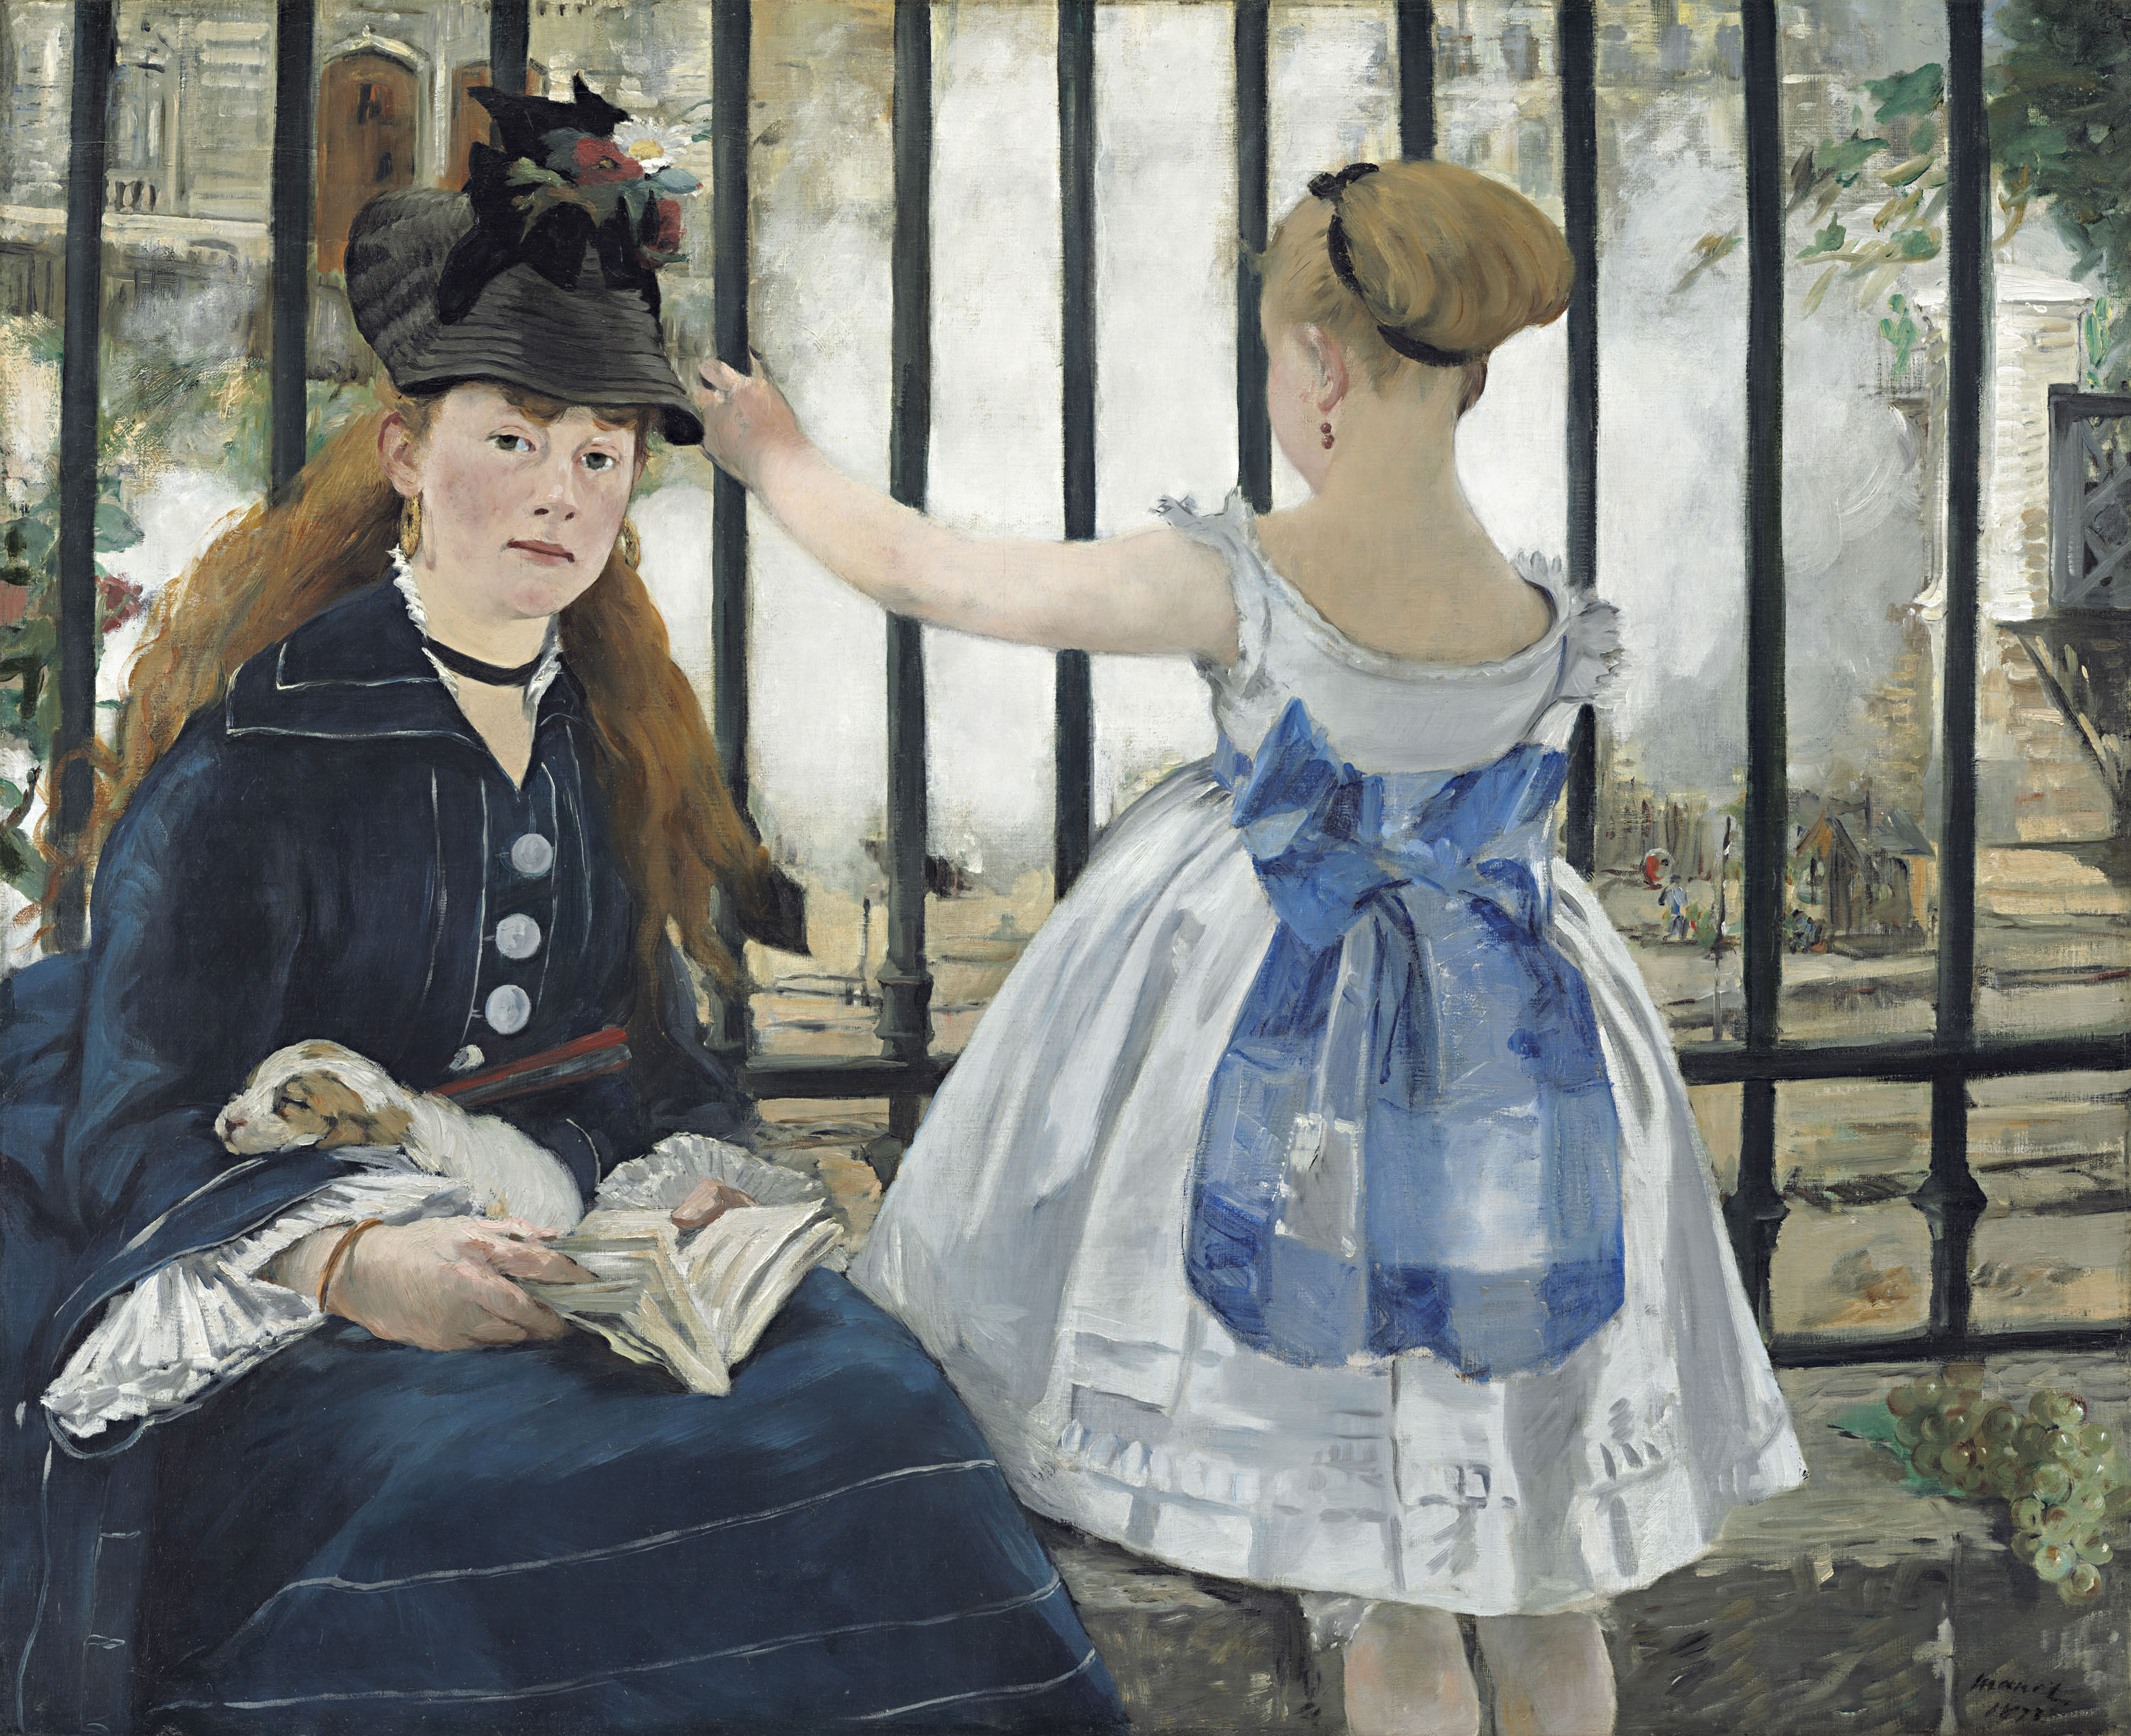 'The Railway' (1873) by Edouard Manet